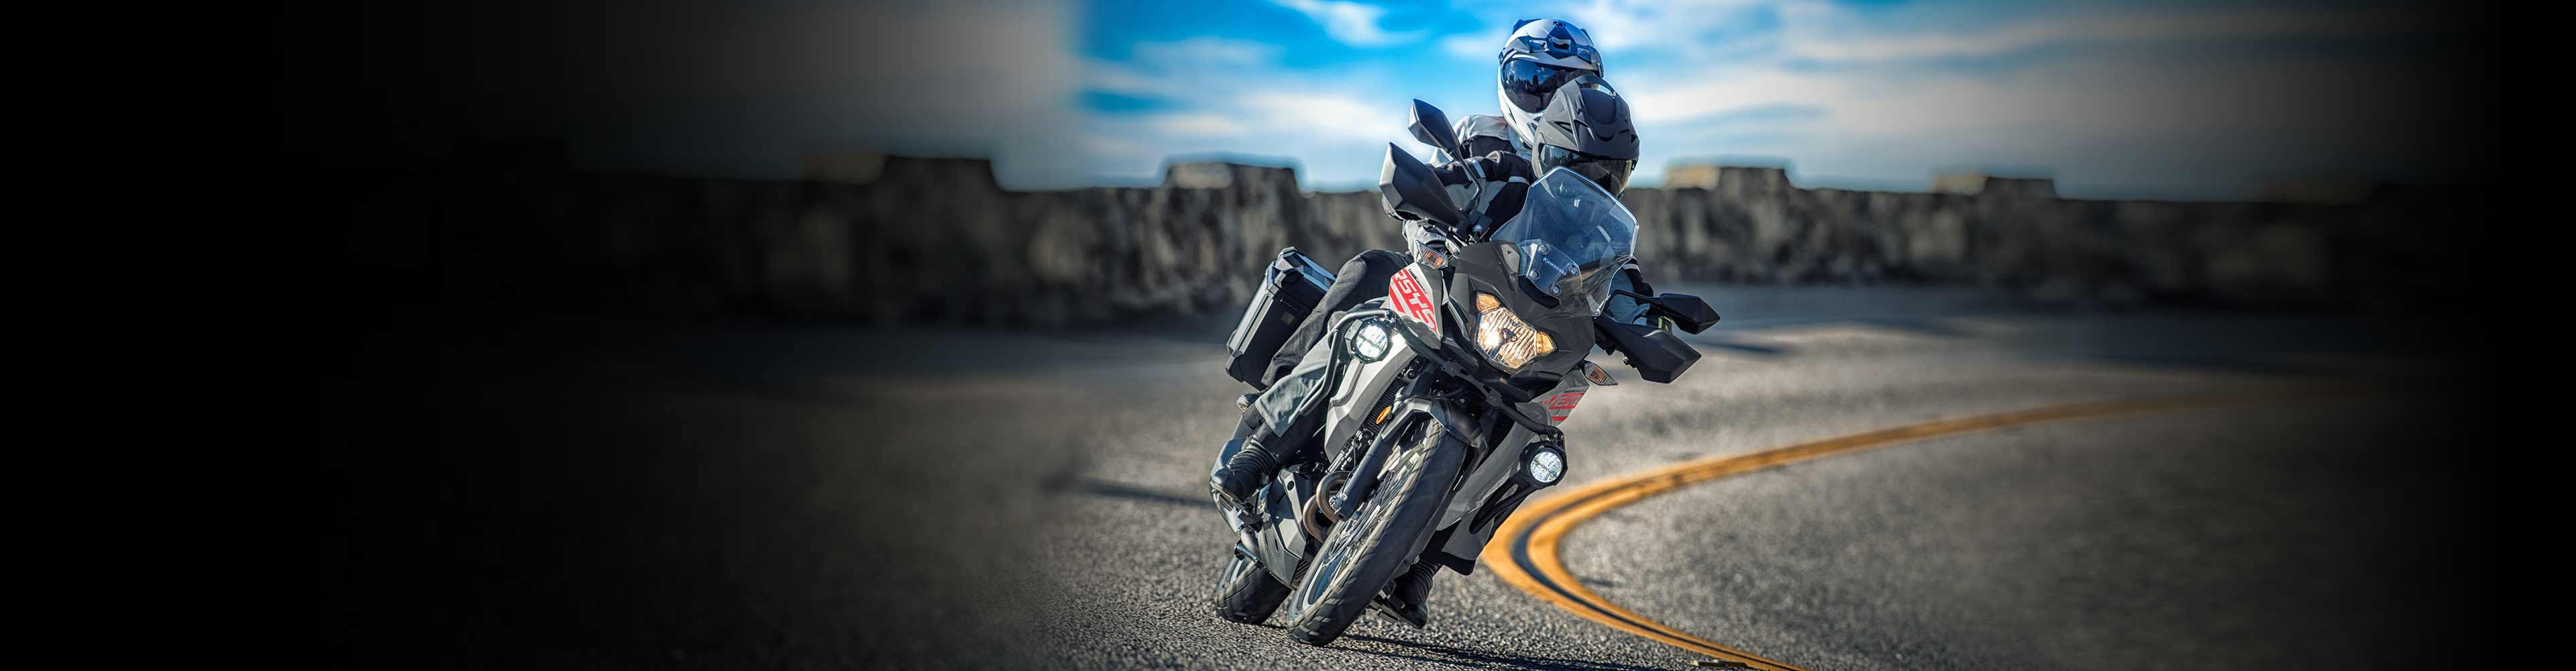 2021 Kawasaki VERSYS-X 300 in action on the road.